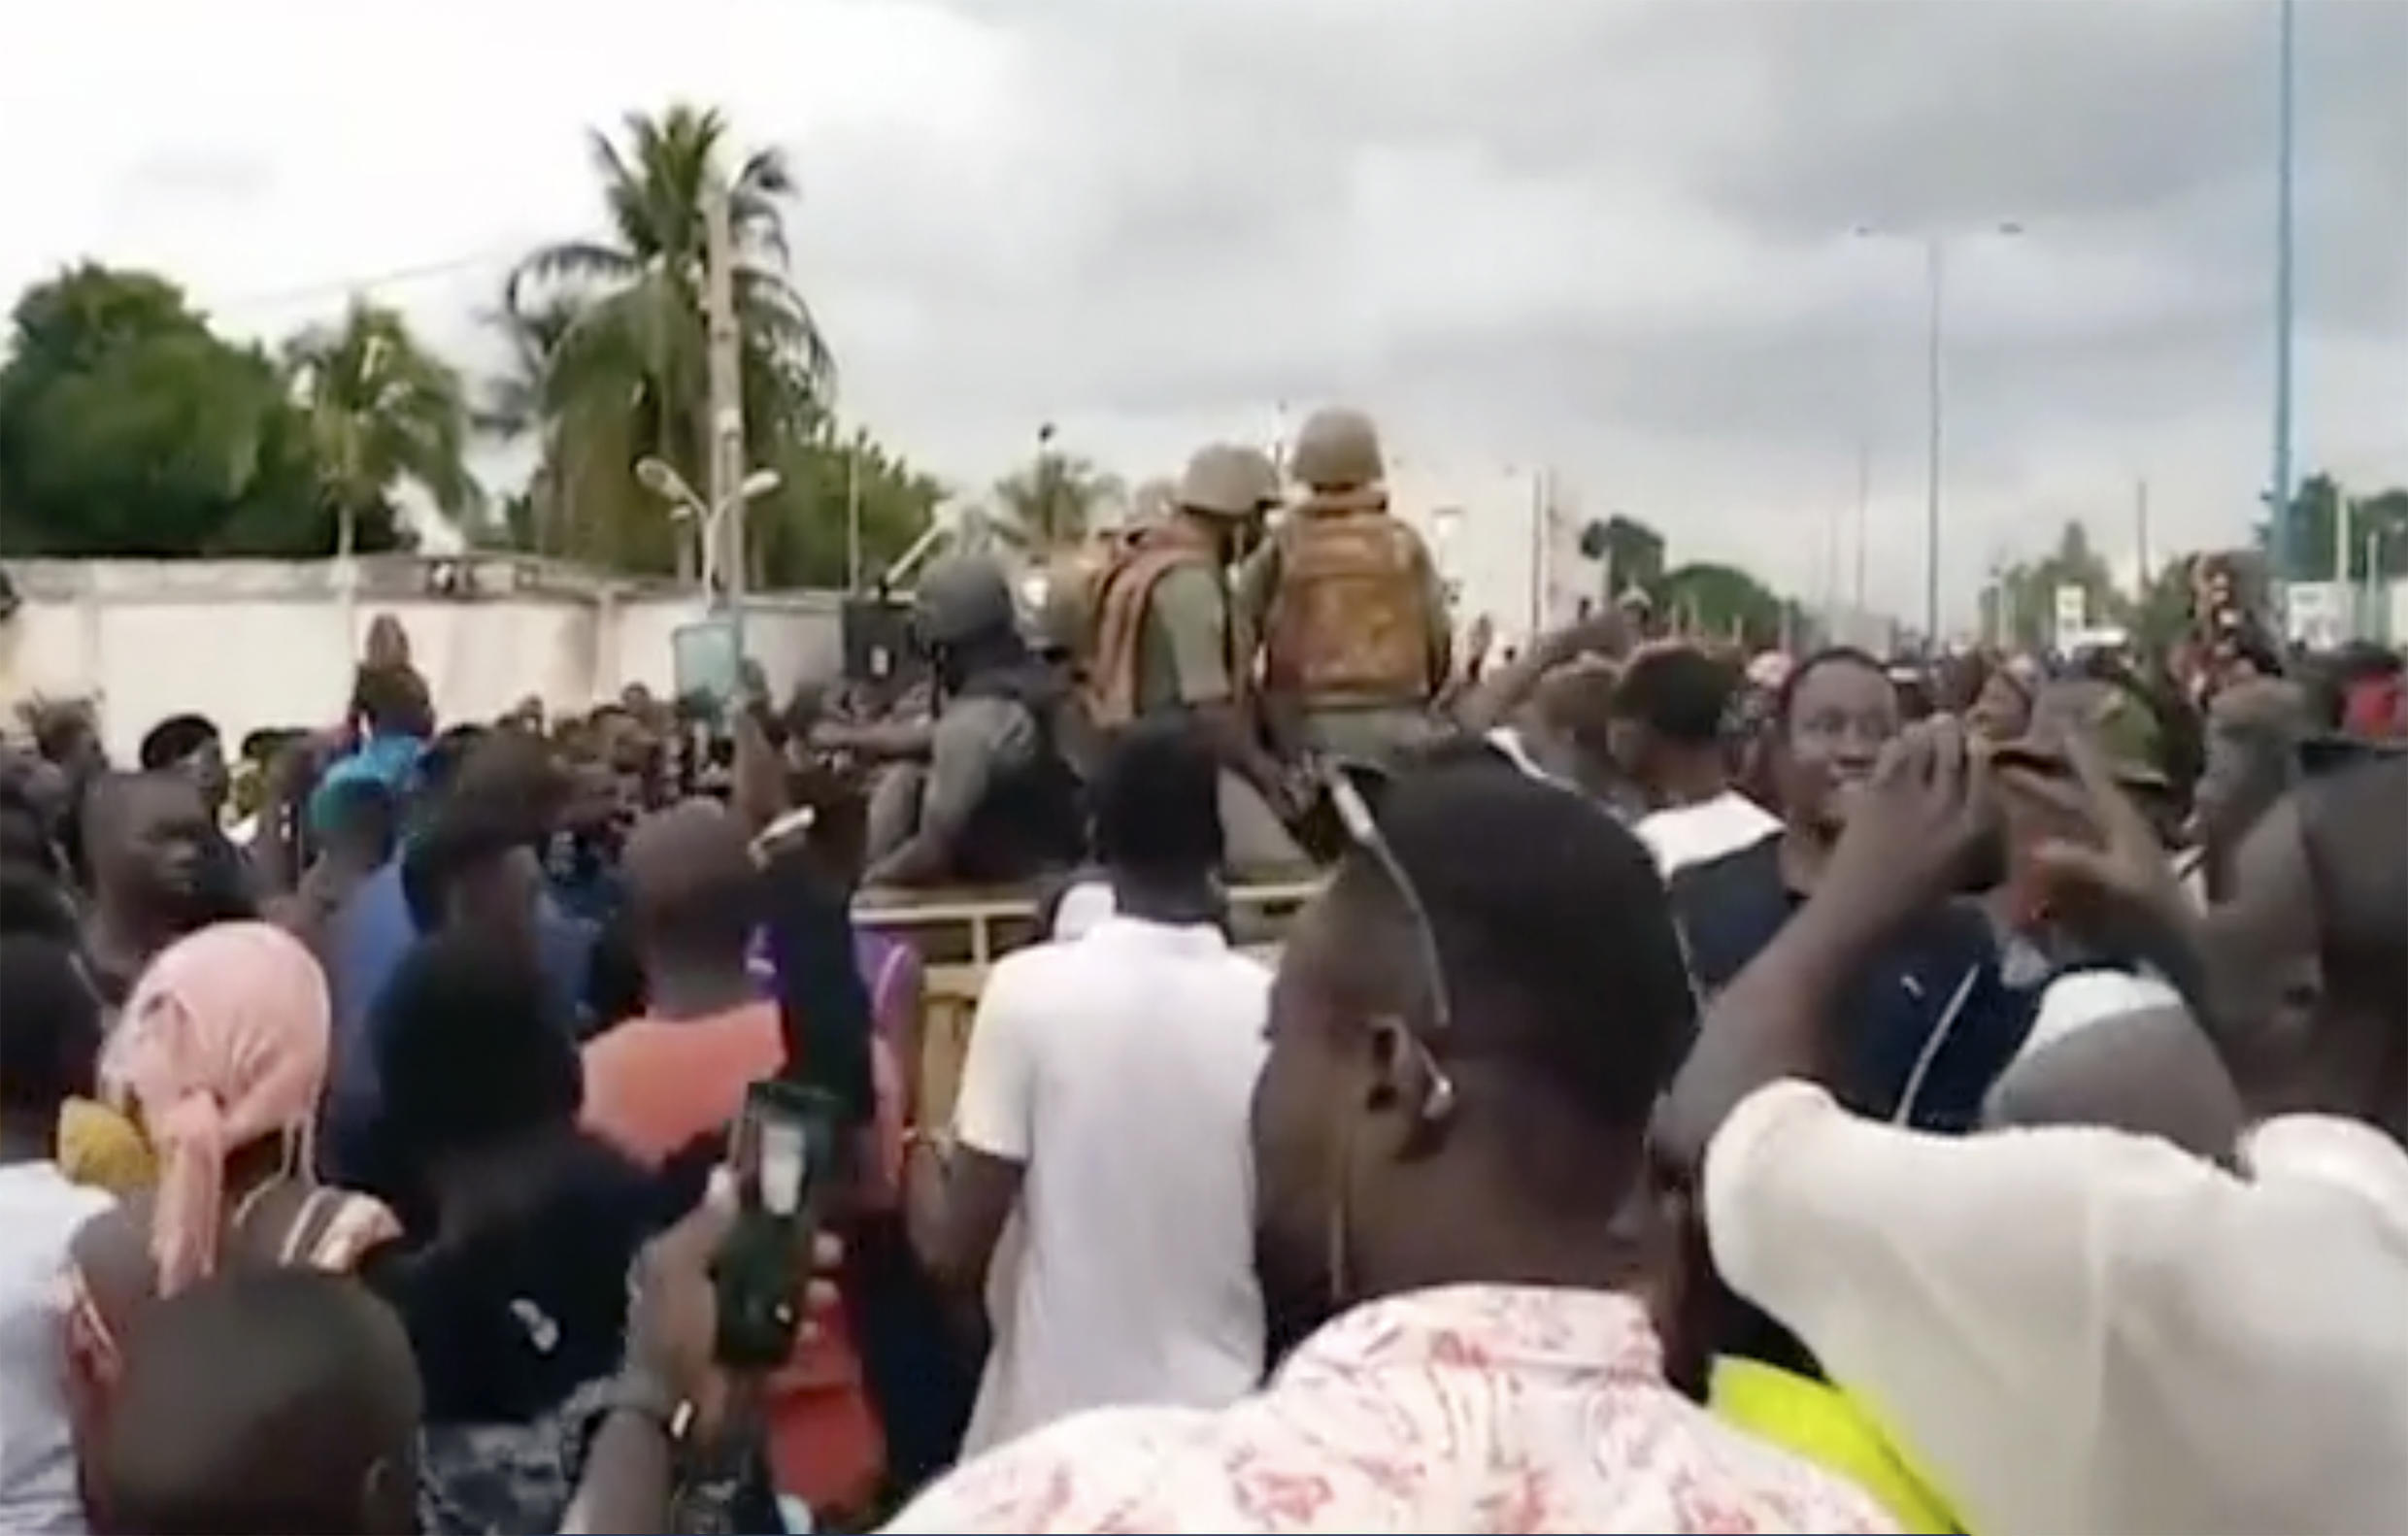 Soldiers are greeted by crowds of people, as military are stationed around President Ibrahim Boubacar Keita's city residence where he and the prime minister were later detained, in Bamako, Tuesday Aug. 18, 2020.  Malian President Ibrahim Boubacar Keita appeared on state television to announce his resignation with immediate effect late Tuesday.